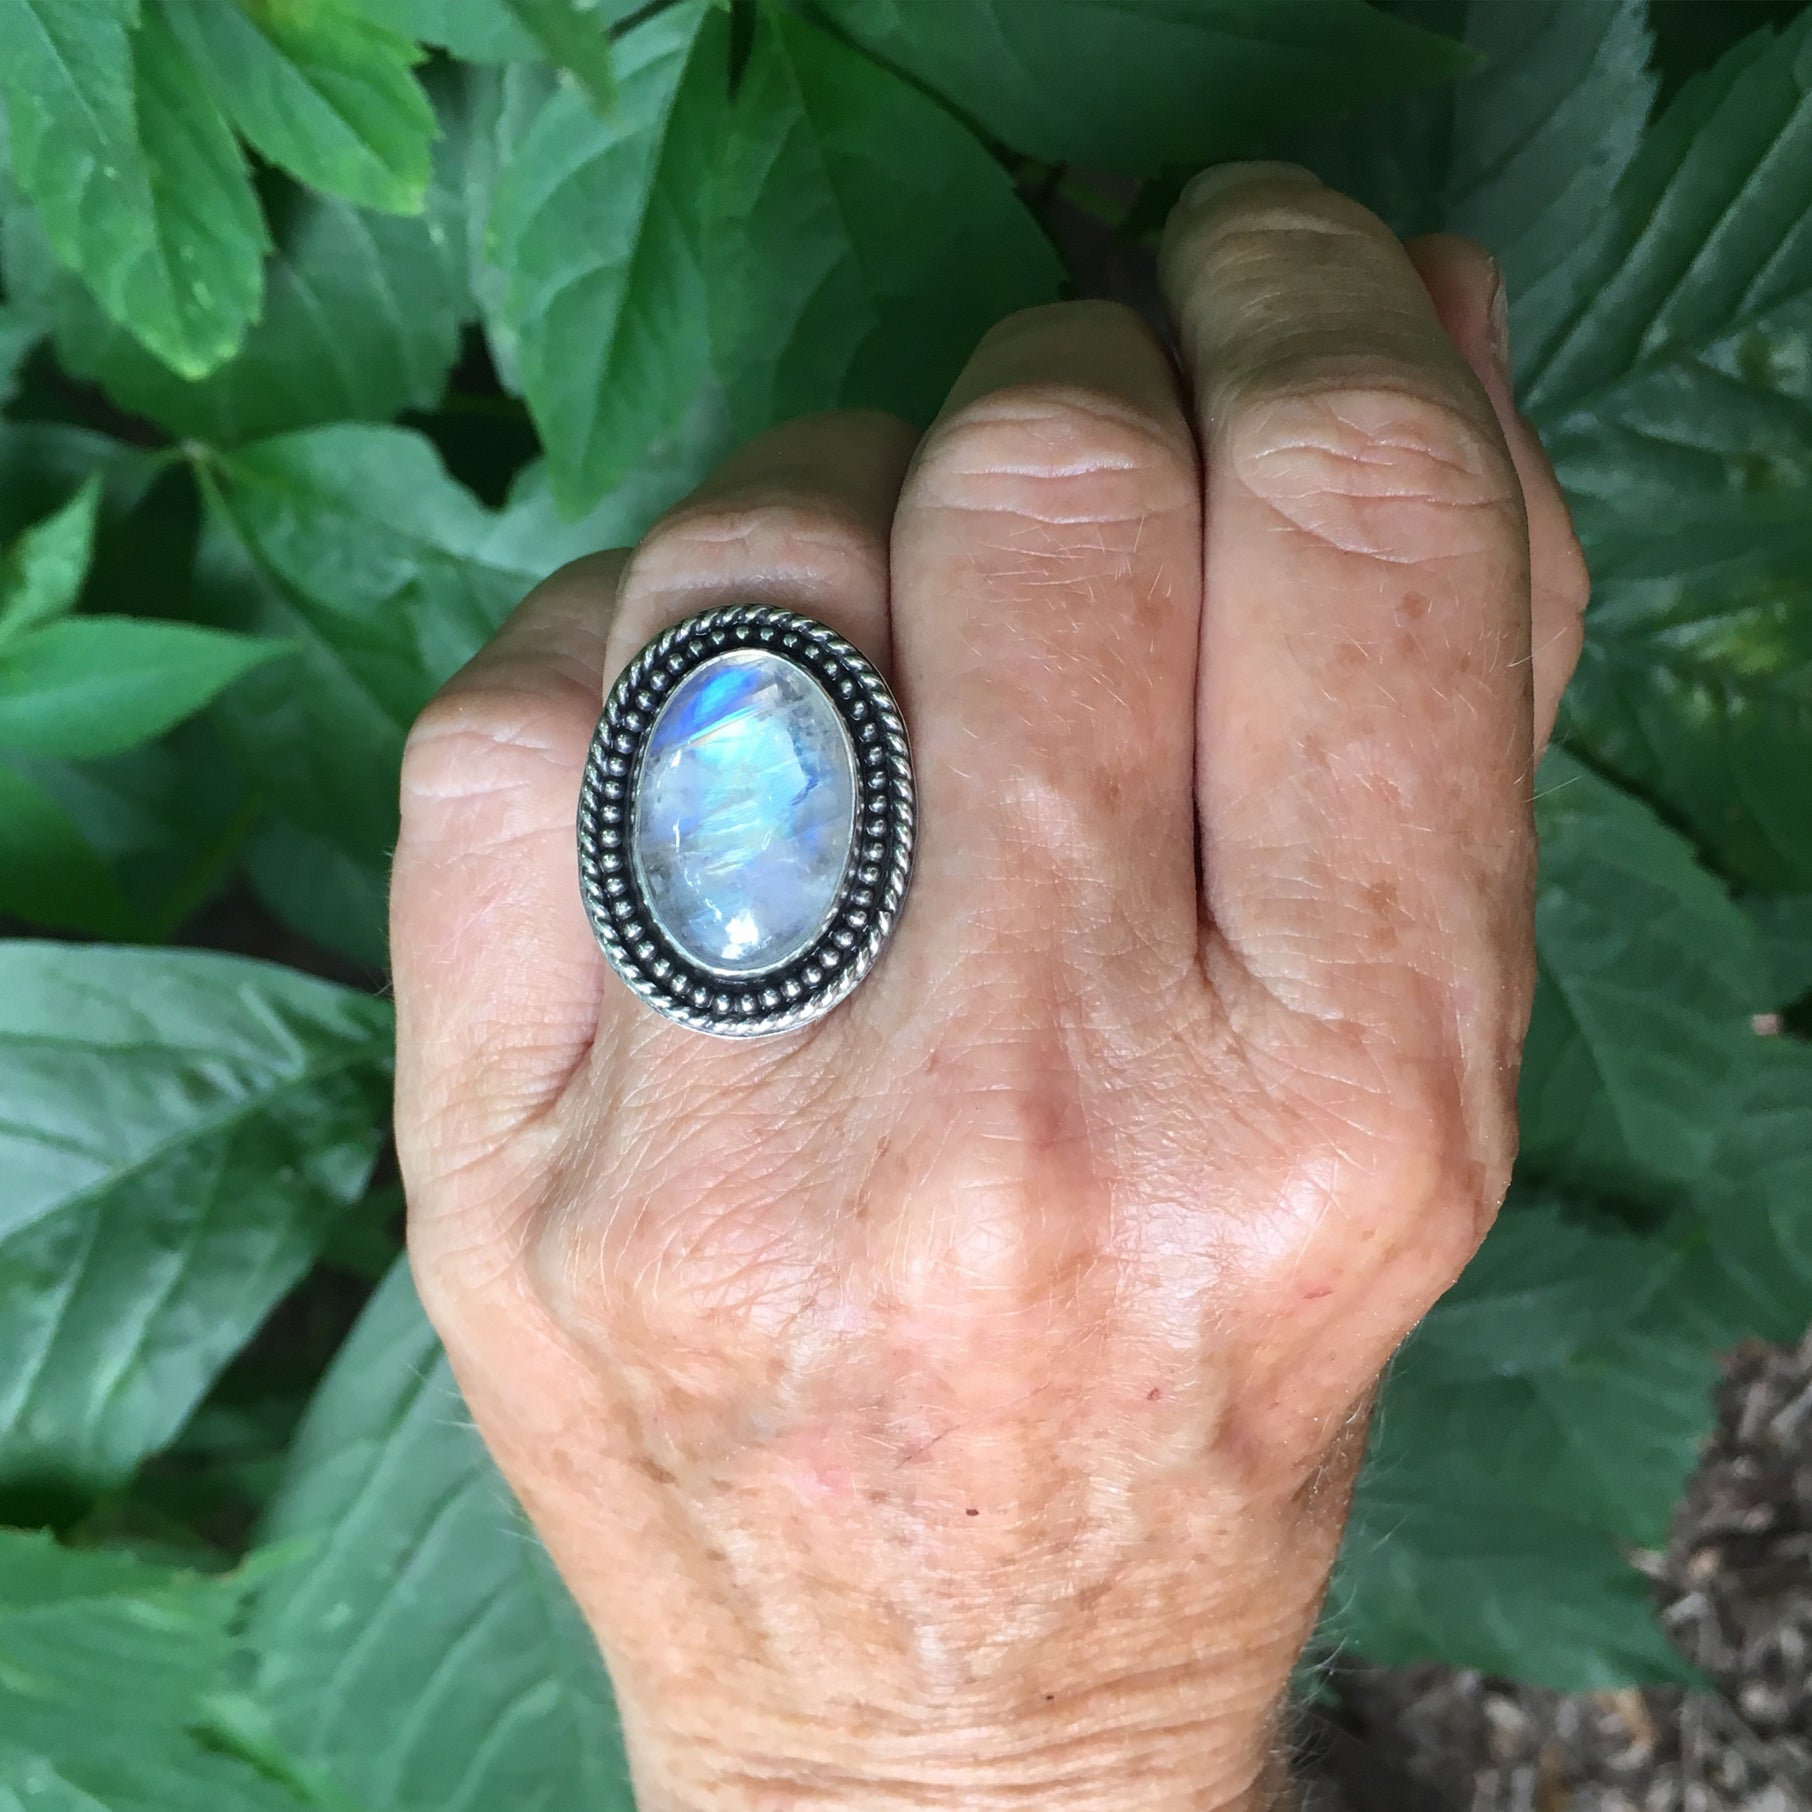 Rainbow Moonstone Shield Ring Shown on Hand